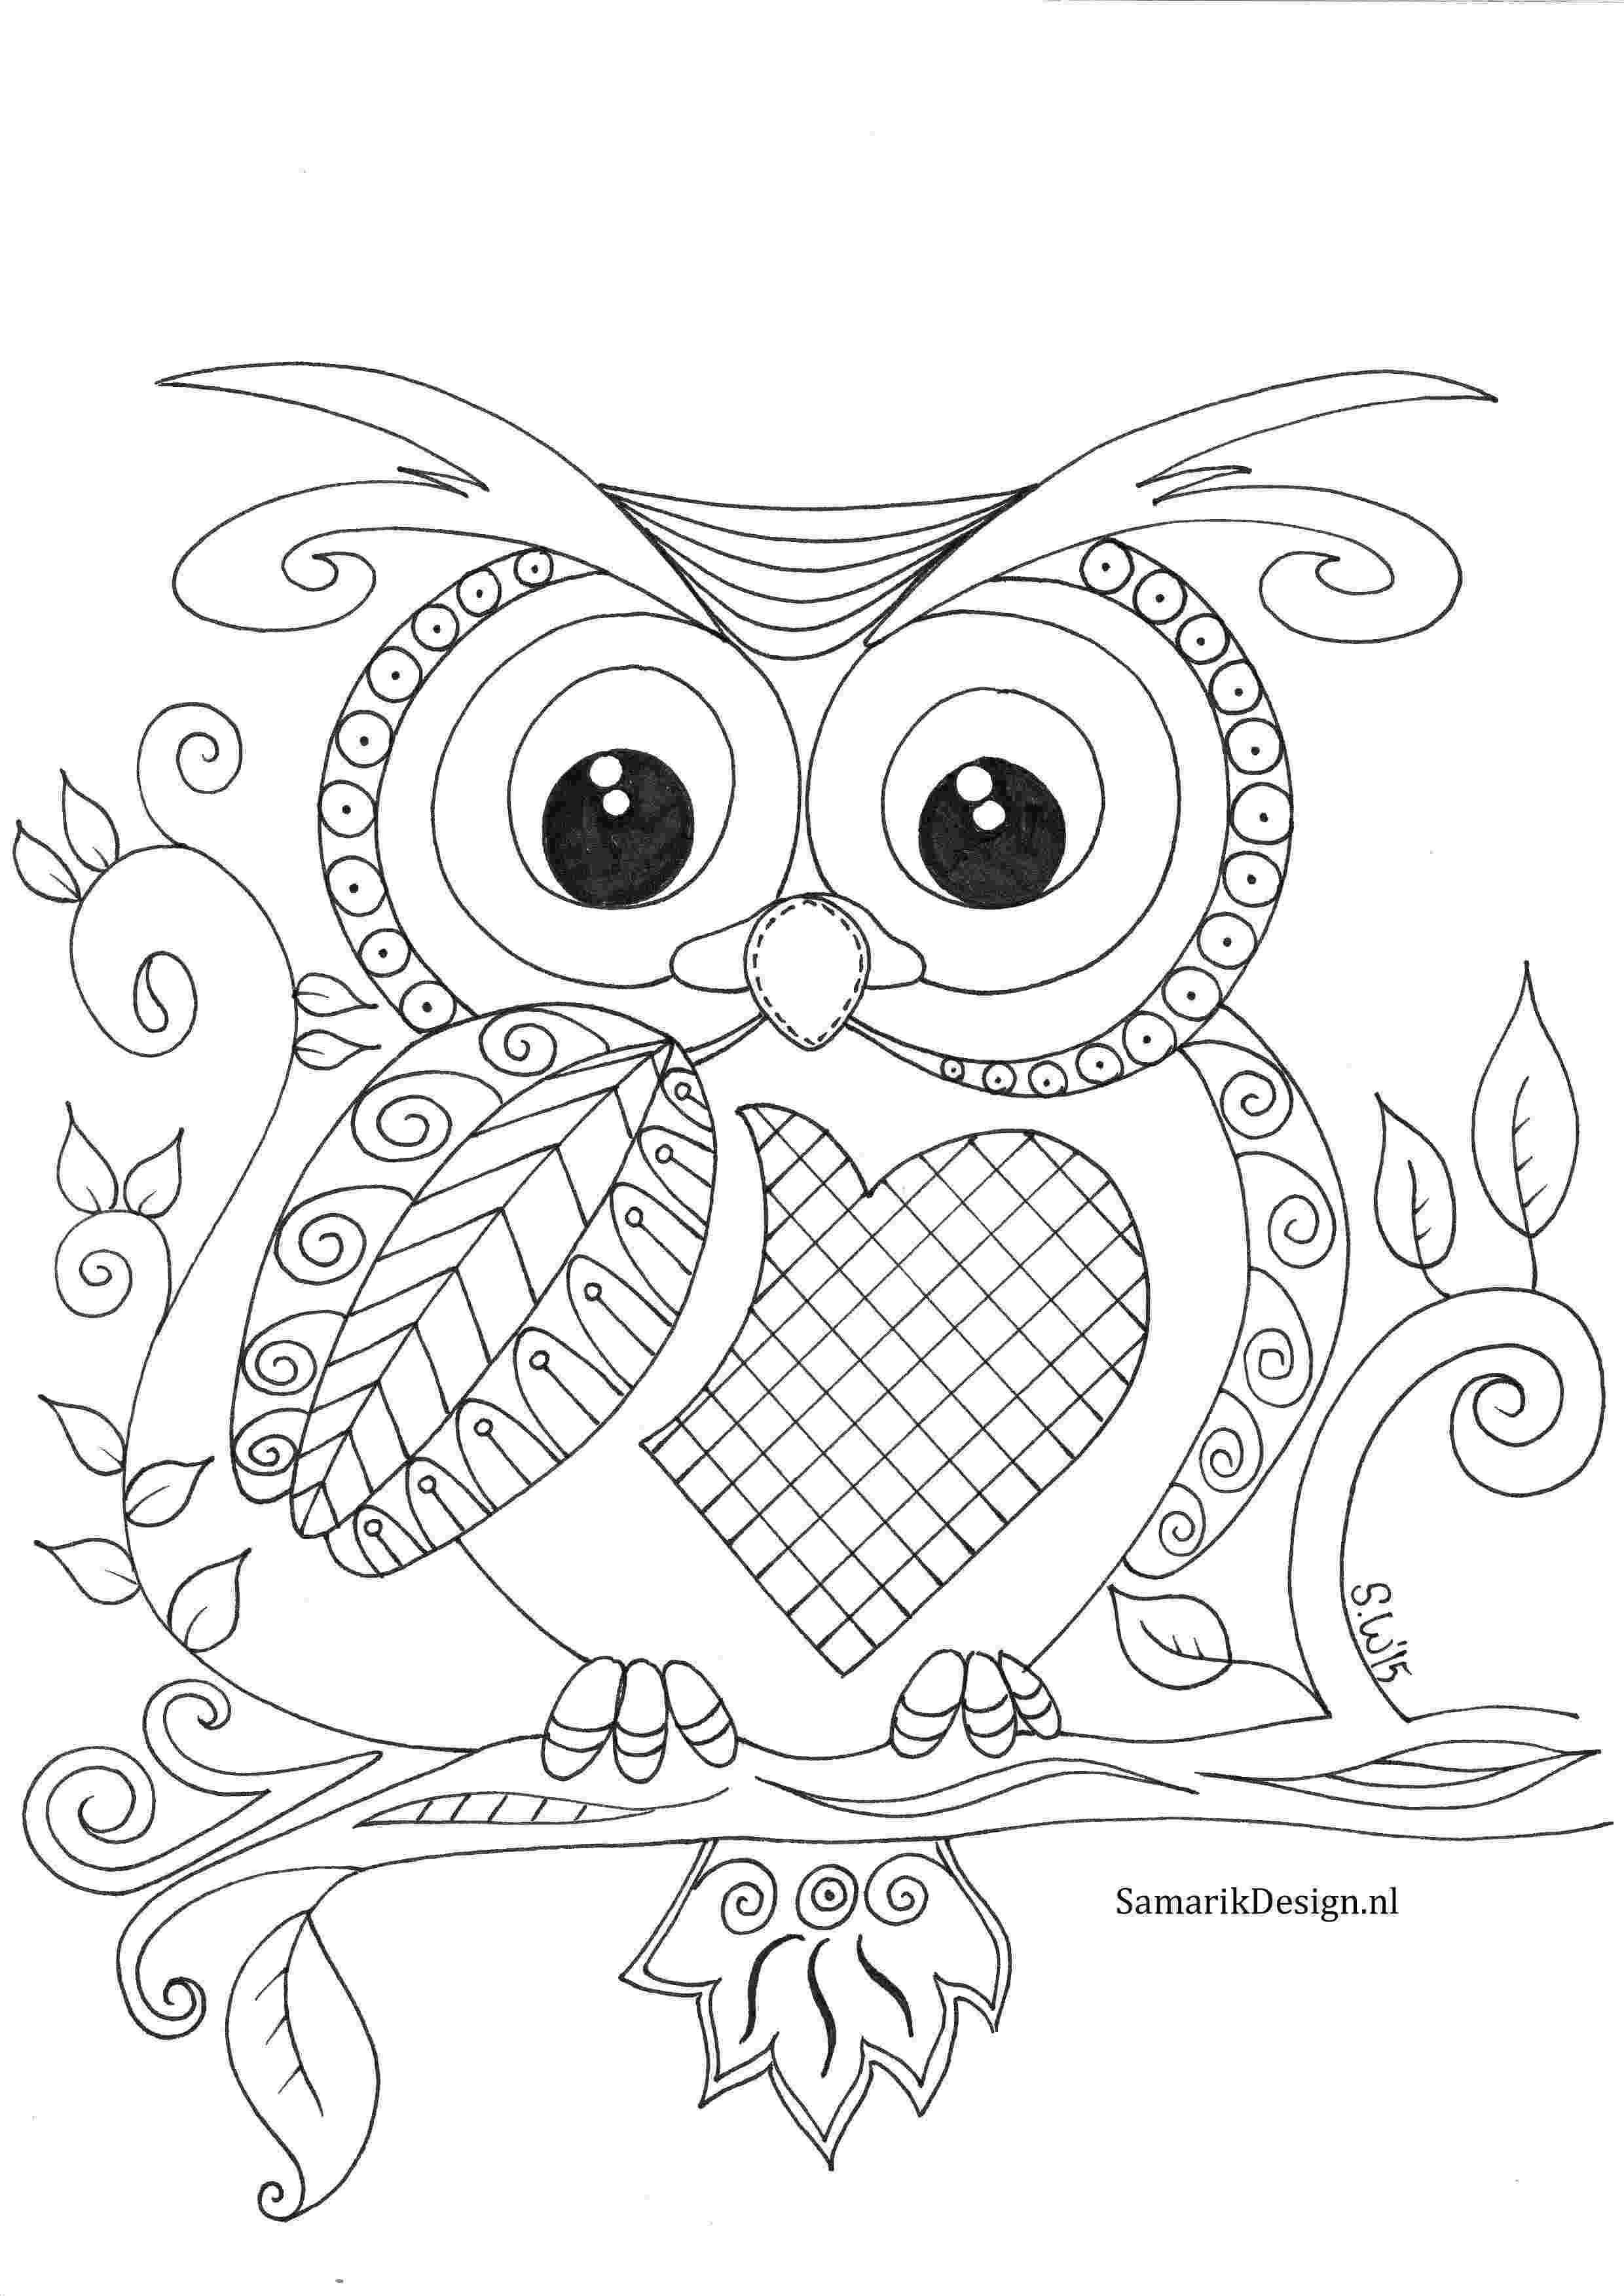 coloring pages for adults with owls owl coloring pages for adults free detailed owl coloring coloring adults for owls pages with